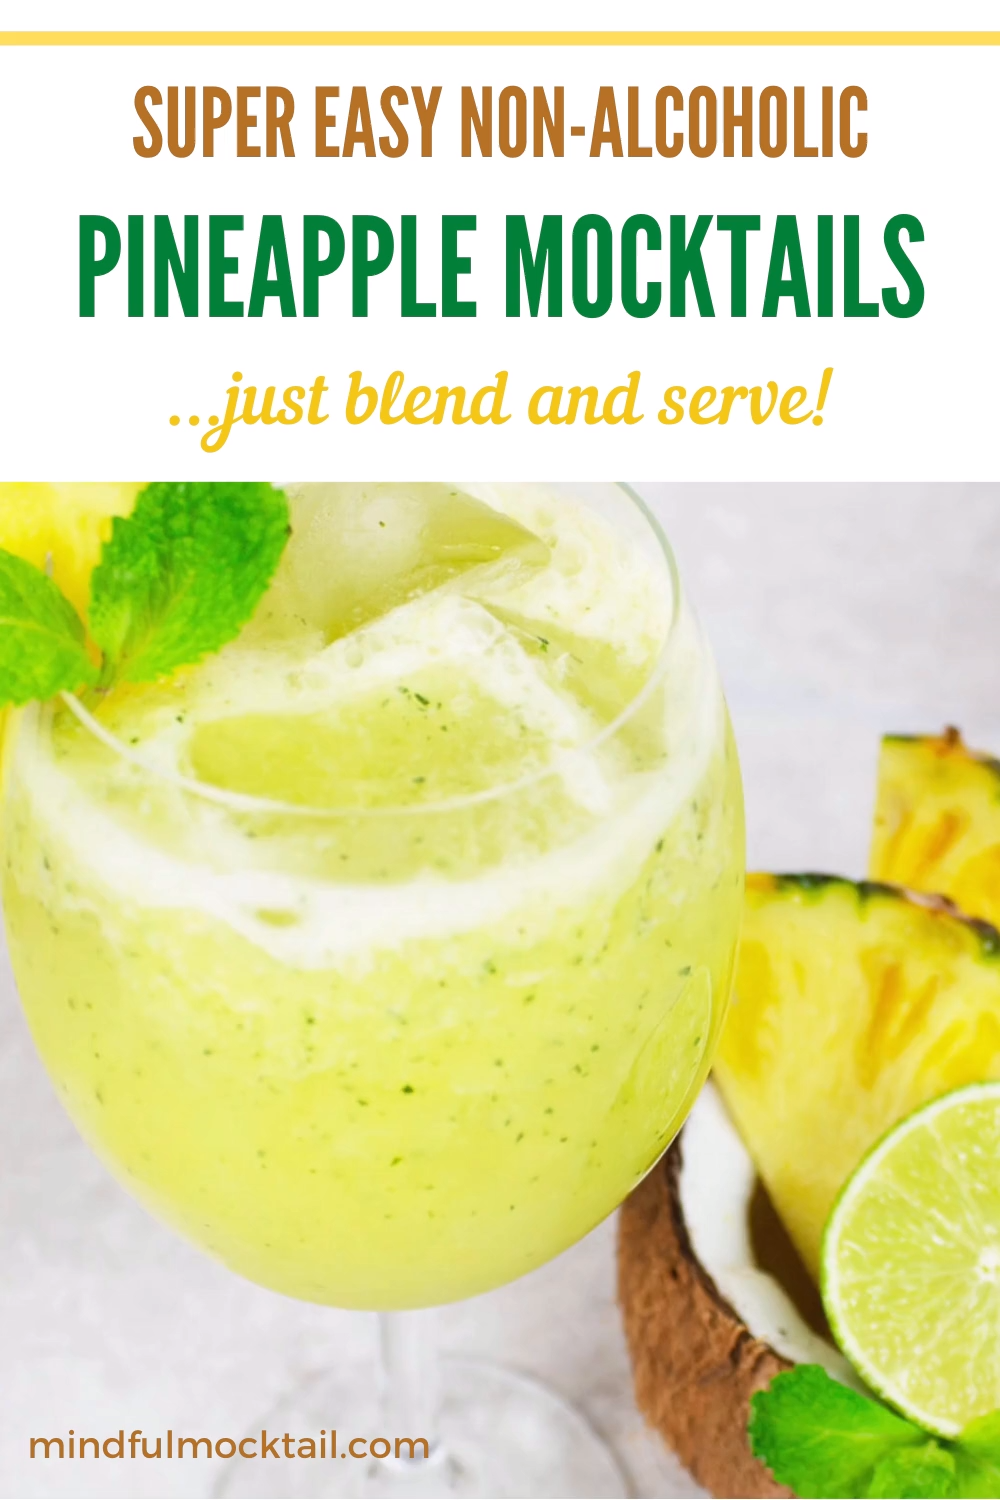 Pineapple Mocktail Recipe With Lime And Mint Non Alcoholic Cocktails Video Recipe Video In 2020 Drink Recipes Nonalcoholic Mocktail Recipe Alcohol Recipes